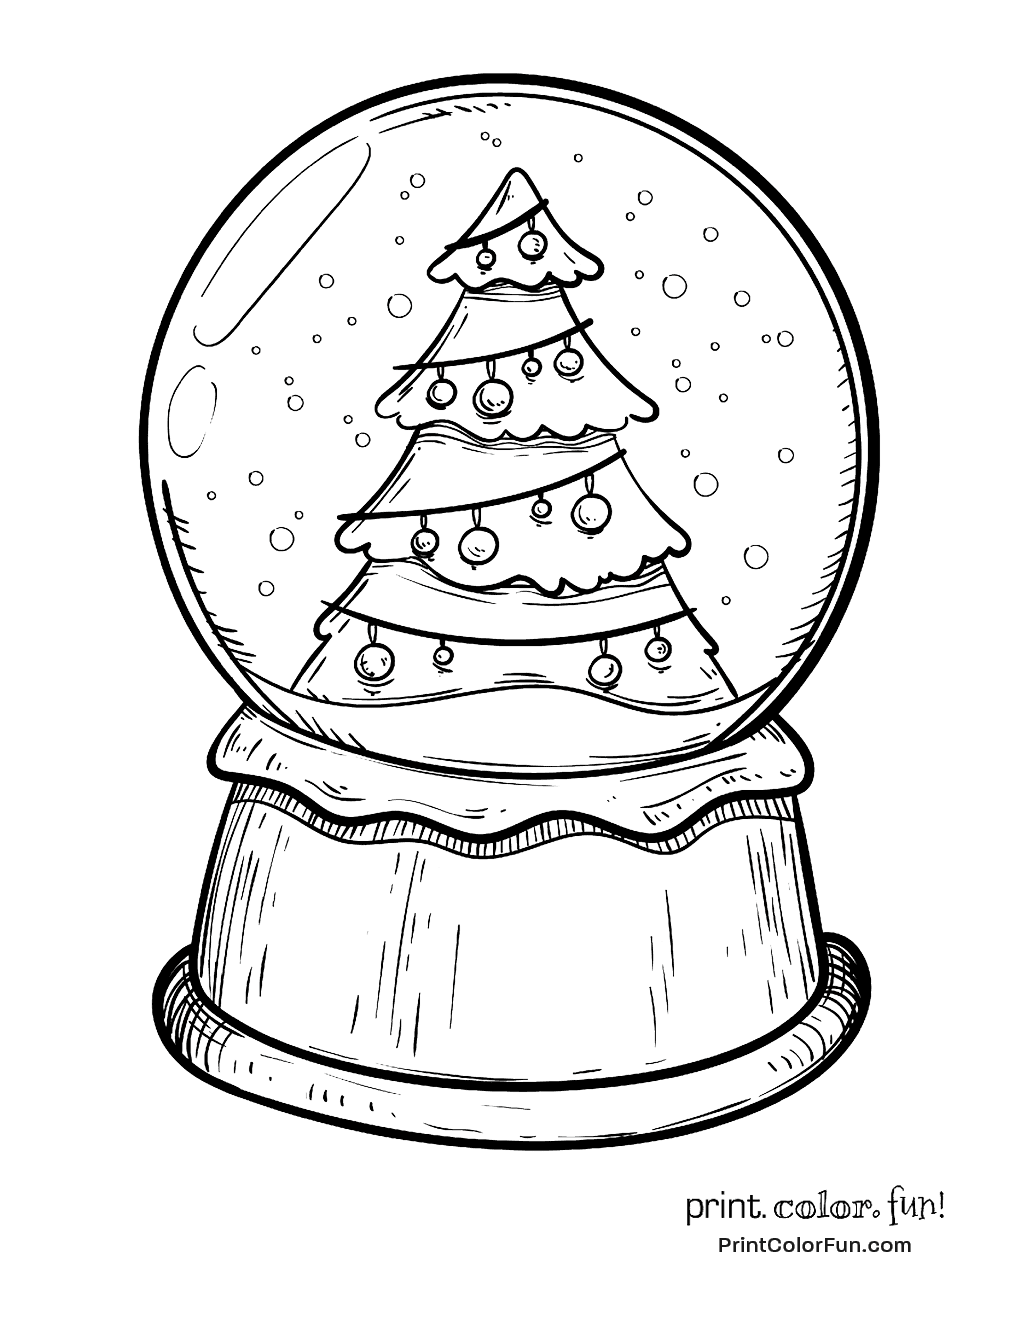 christmas snow globes coloring pages | Printable Christmas Colouring Pages - The Organised Housewife